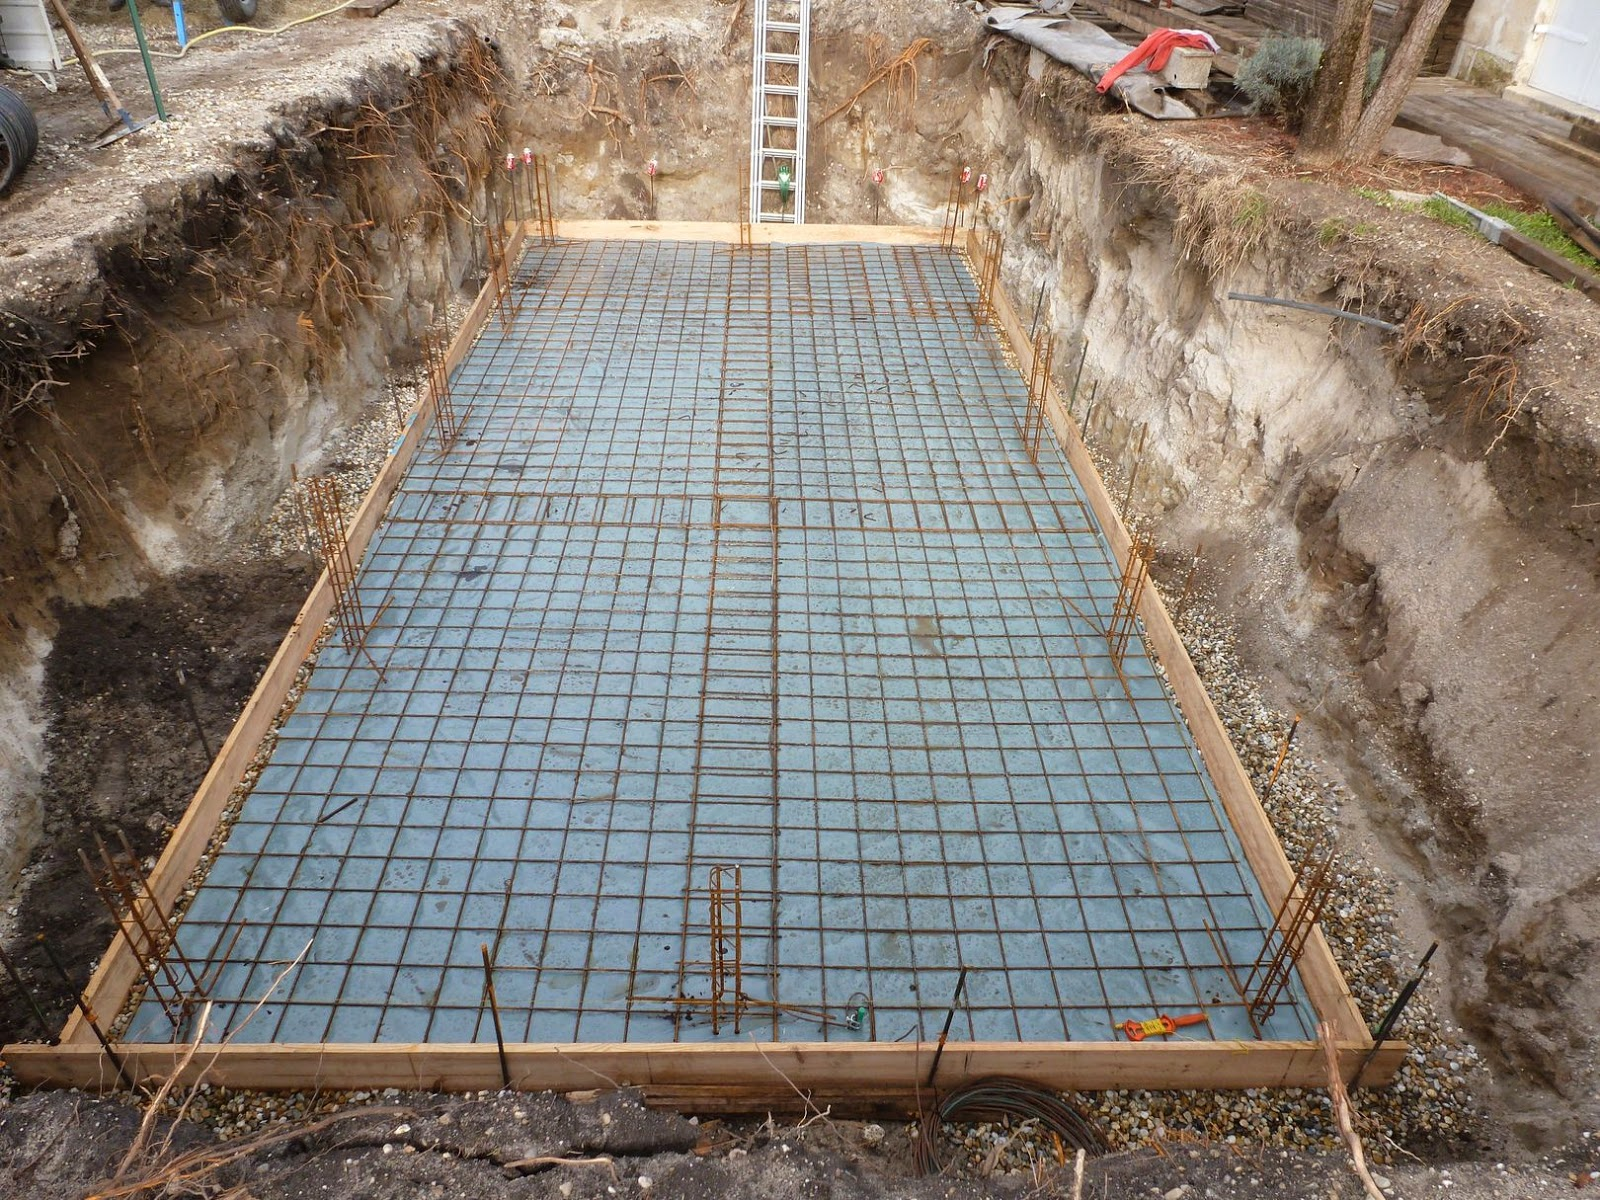 Projet tapes de construction d 39 une piscine en for Piscine coffrage perdu